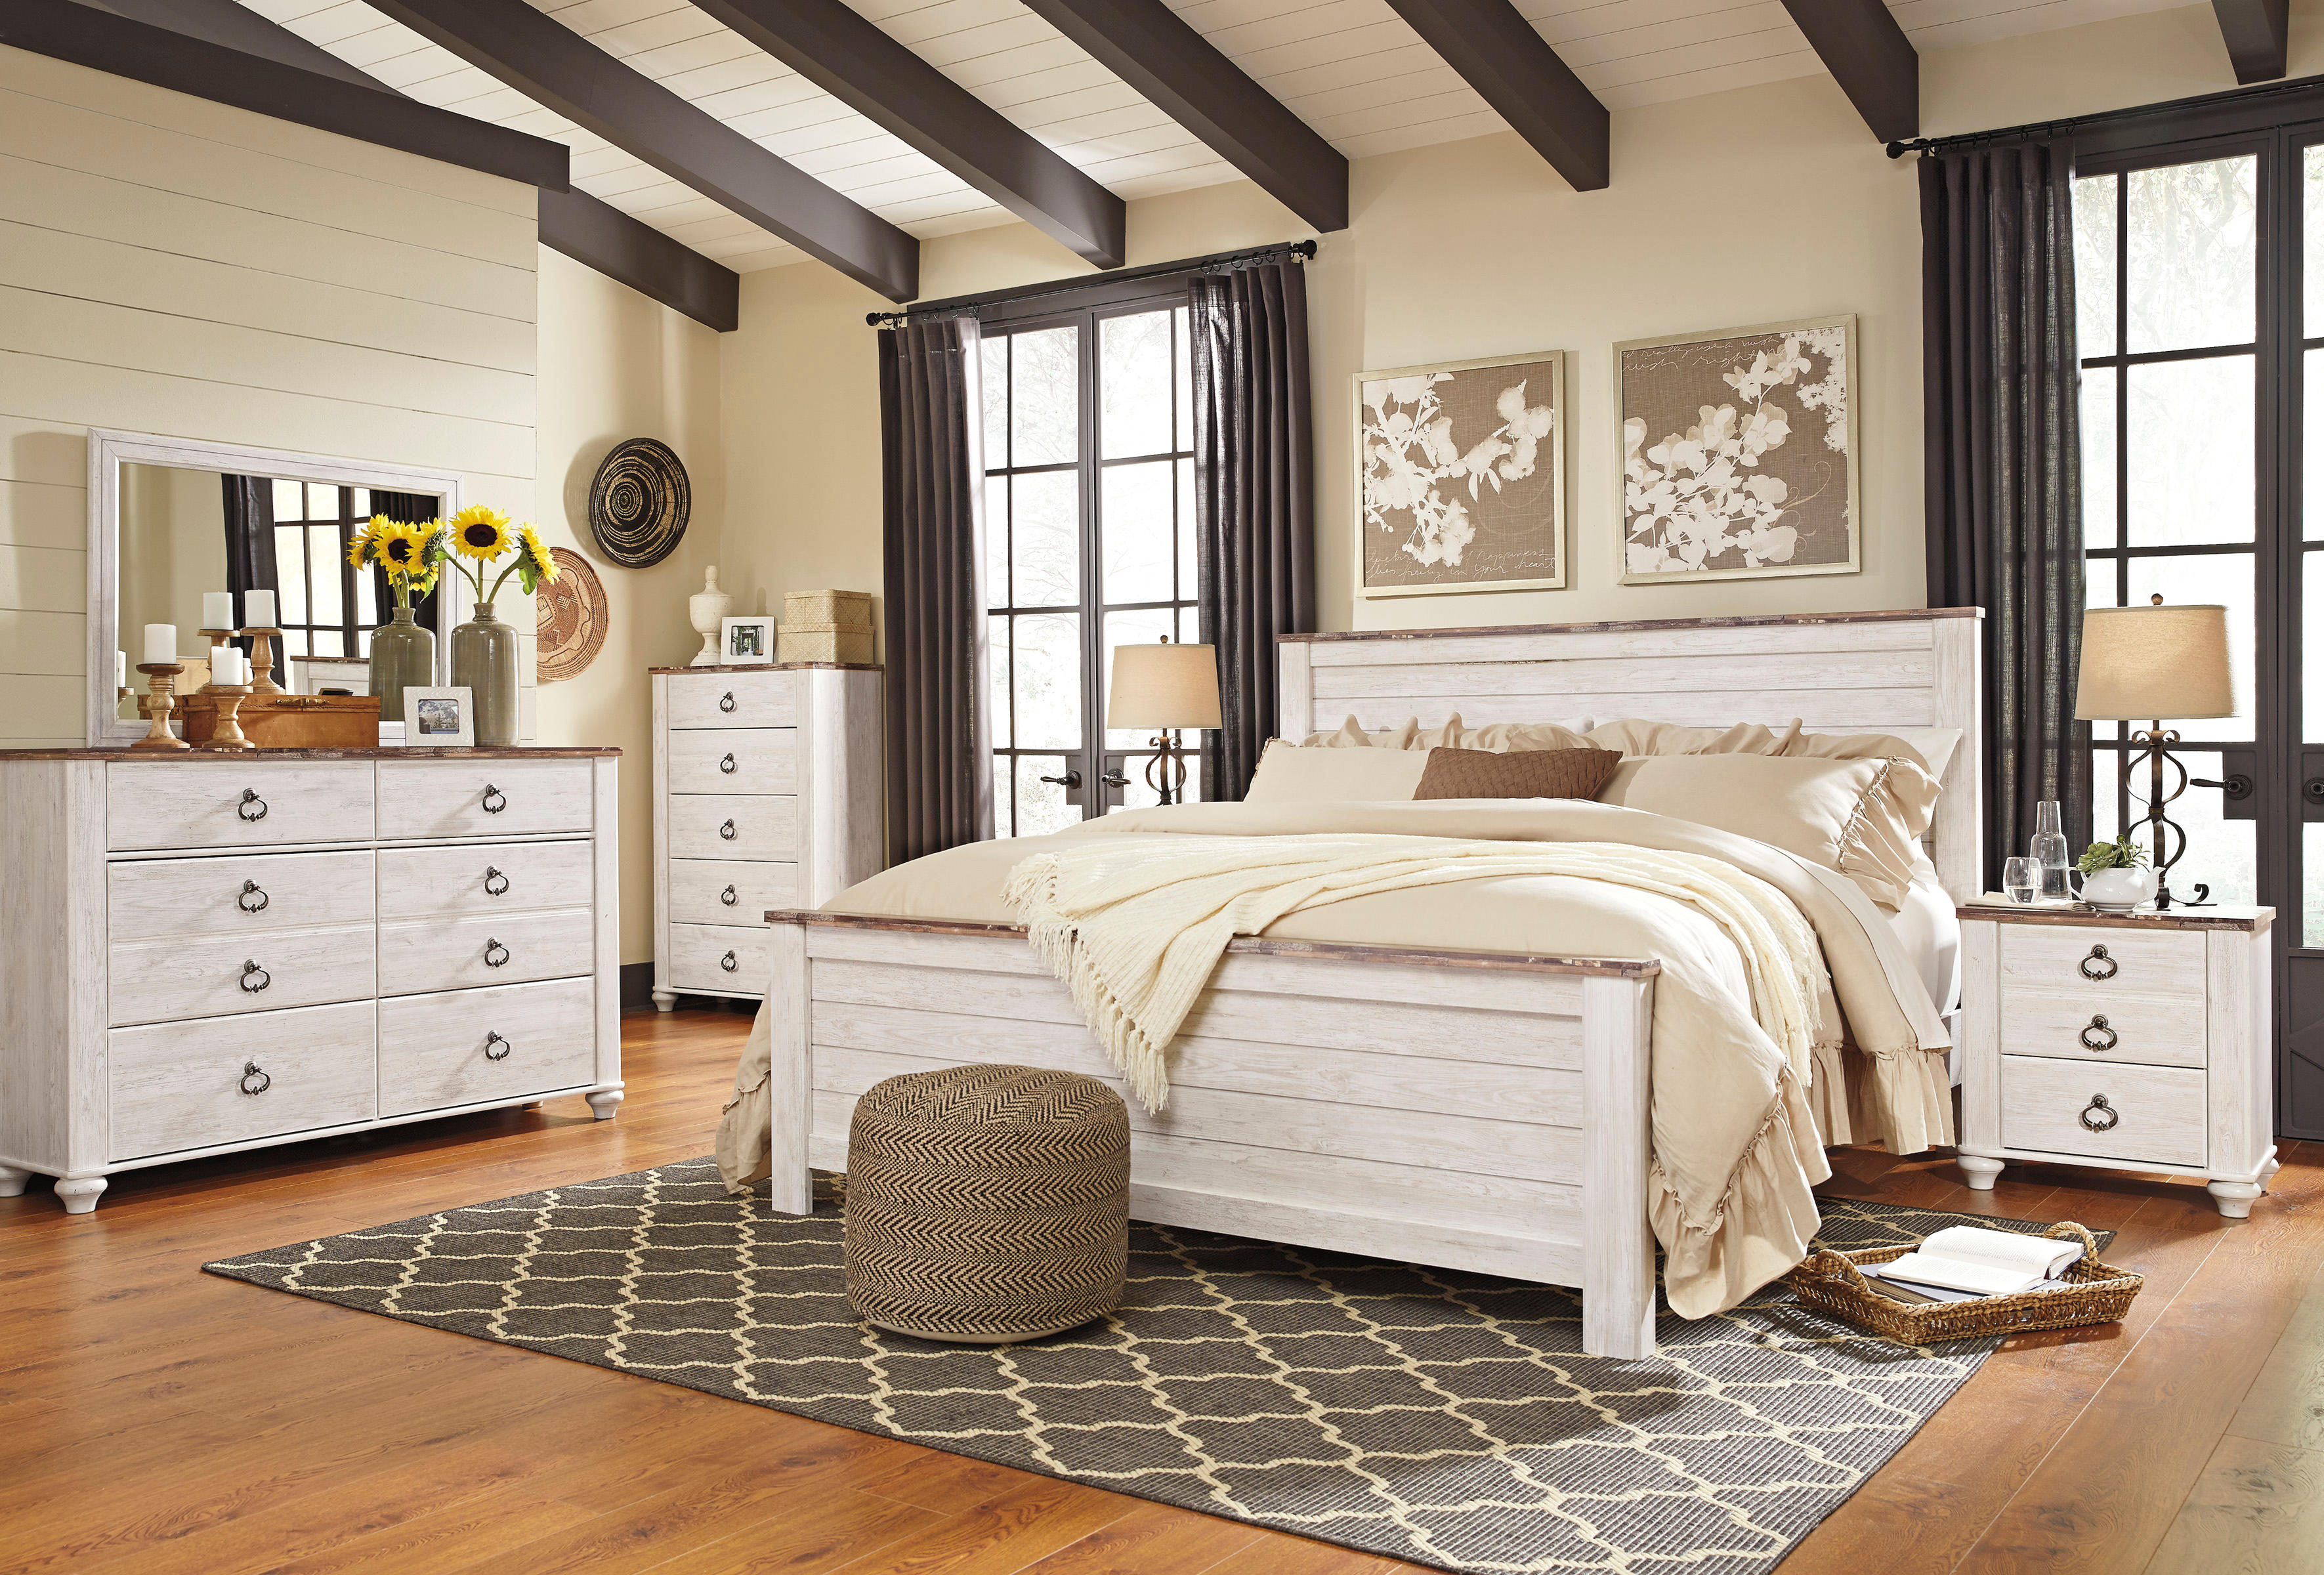 Mattress and Furniture Discount Warehouse image 11